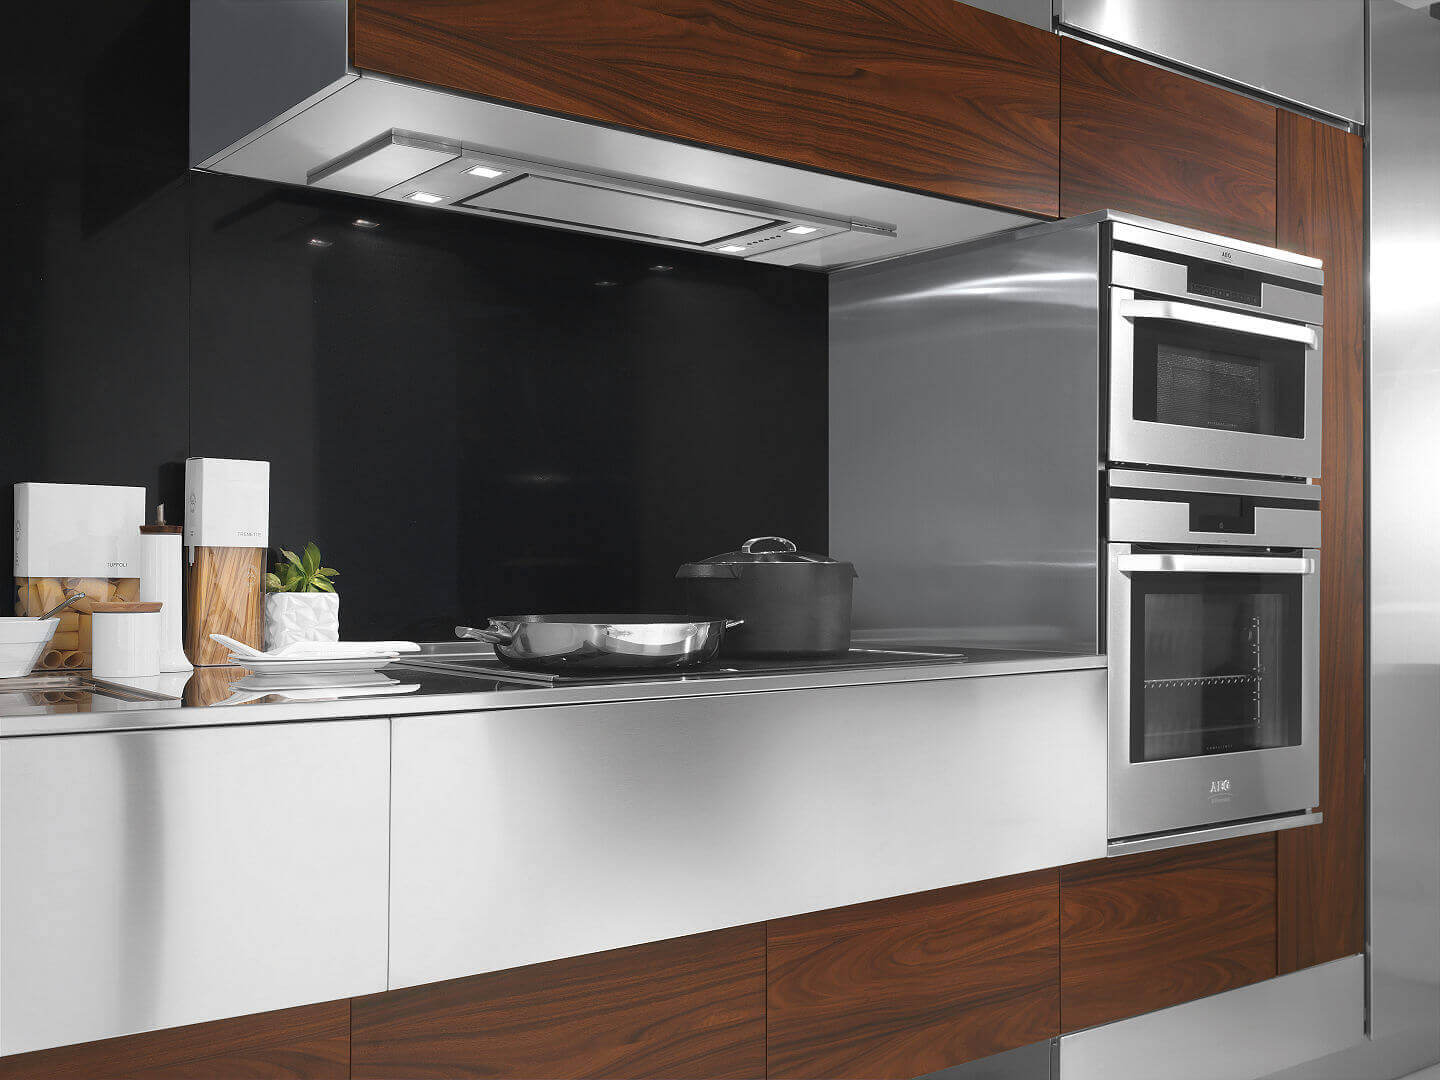 Arca Cucine Italy - Domestic stainless steel kitchens - 24 - Retro - 0004